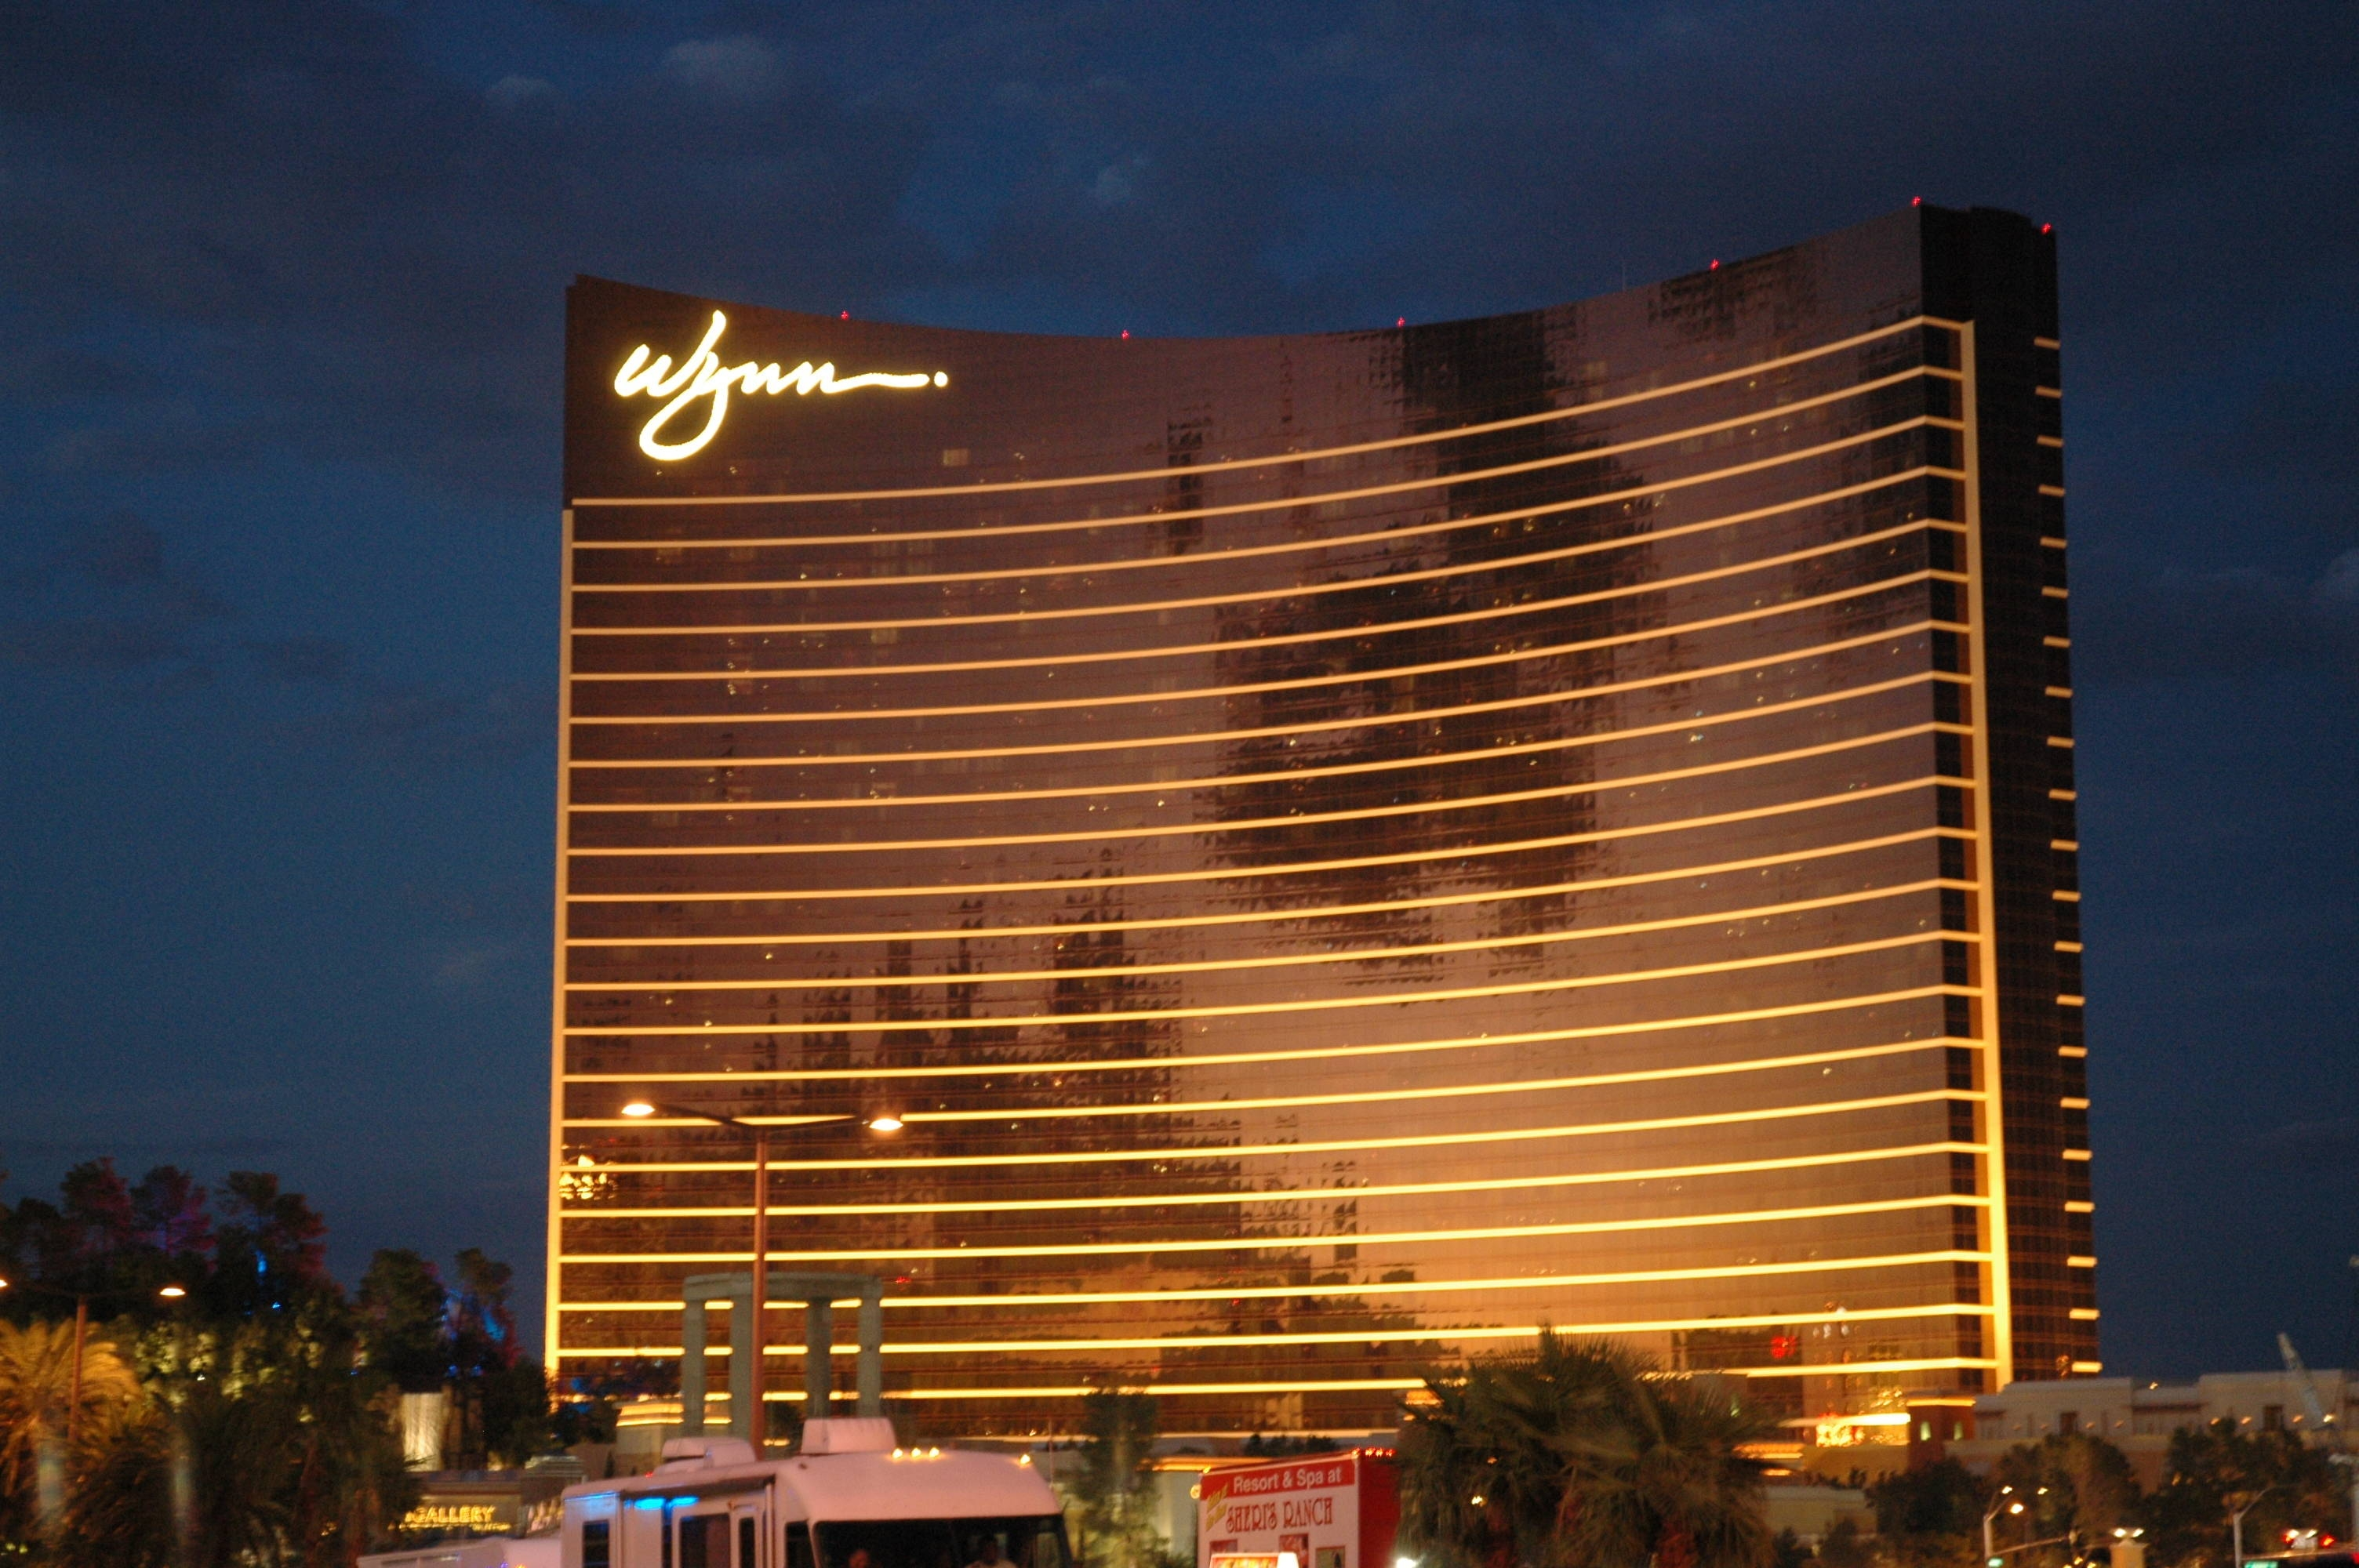 Wynn, Encore to start charging for valet parking